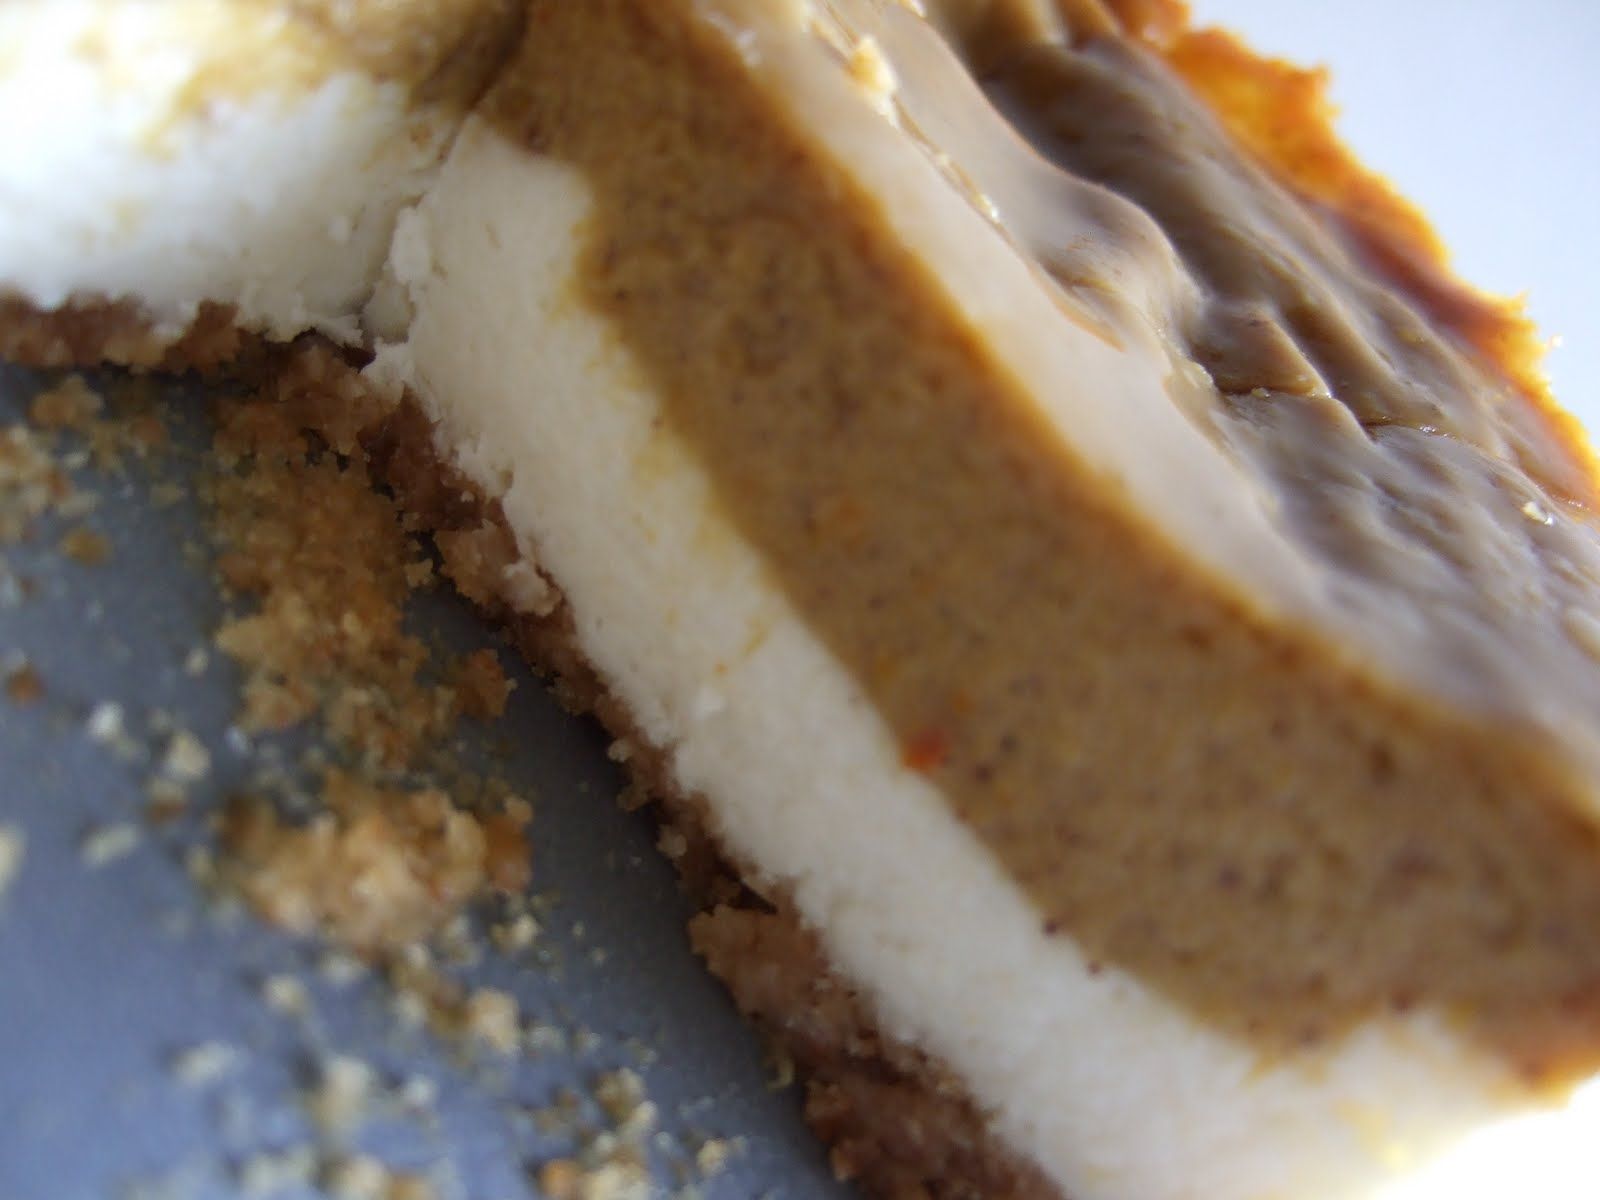 Mel's Creative Corner: Another Cake Story: Pumpkin Pie Cheesecake!